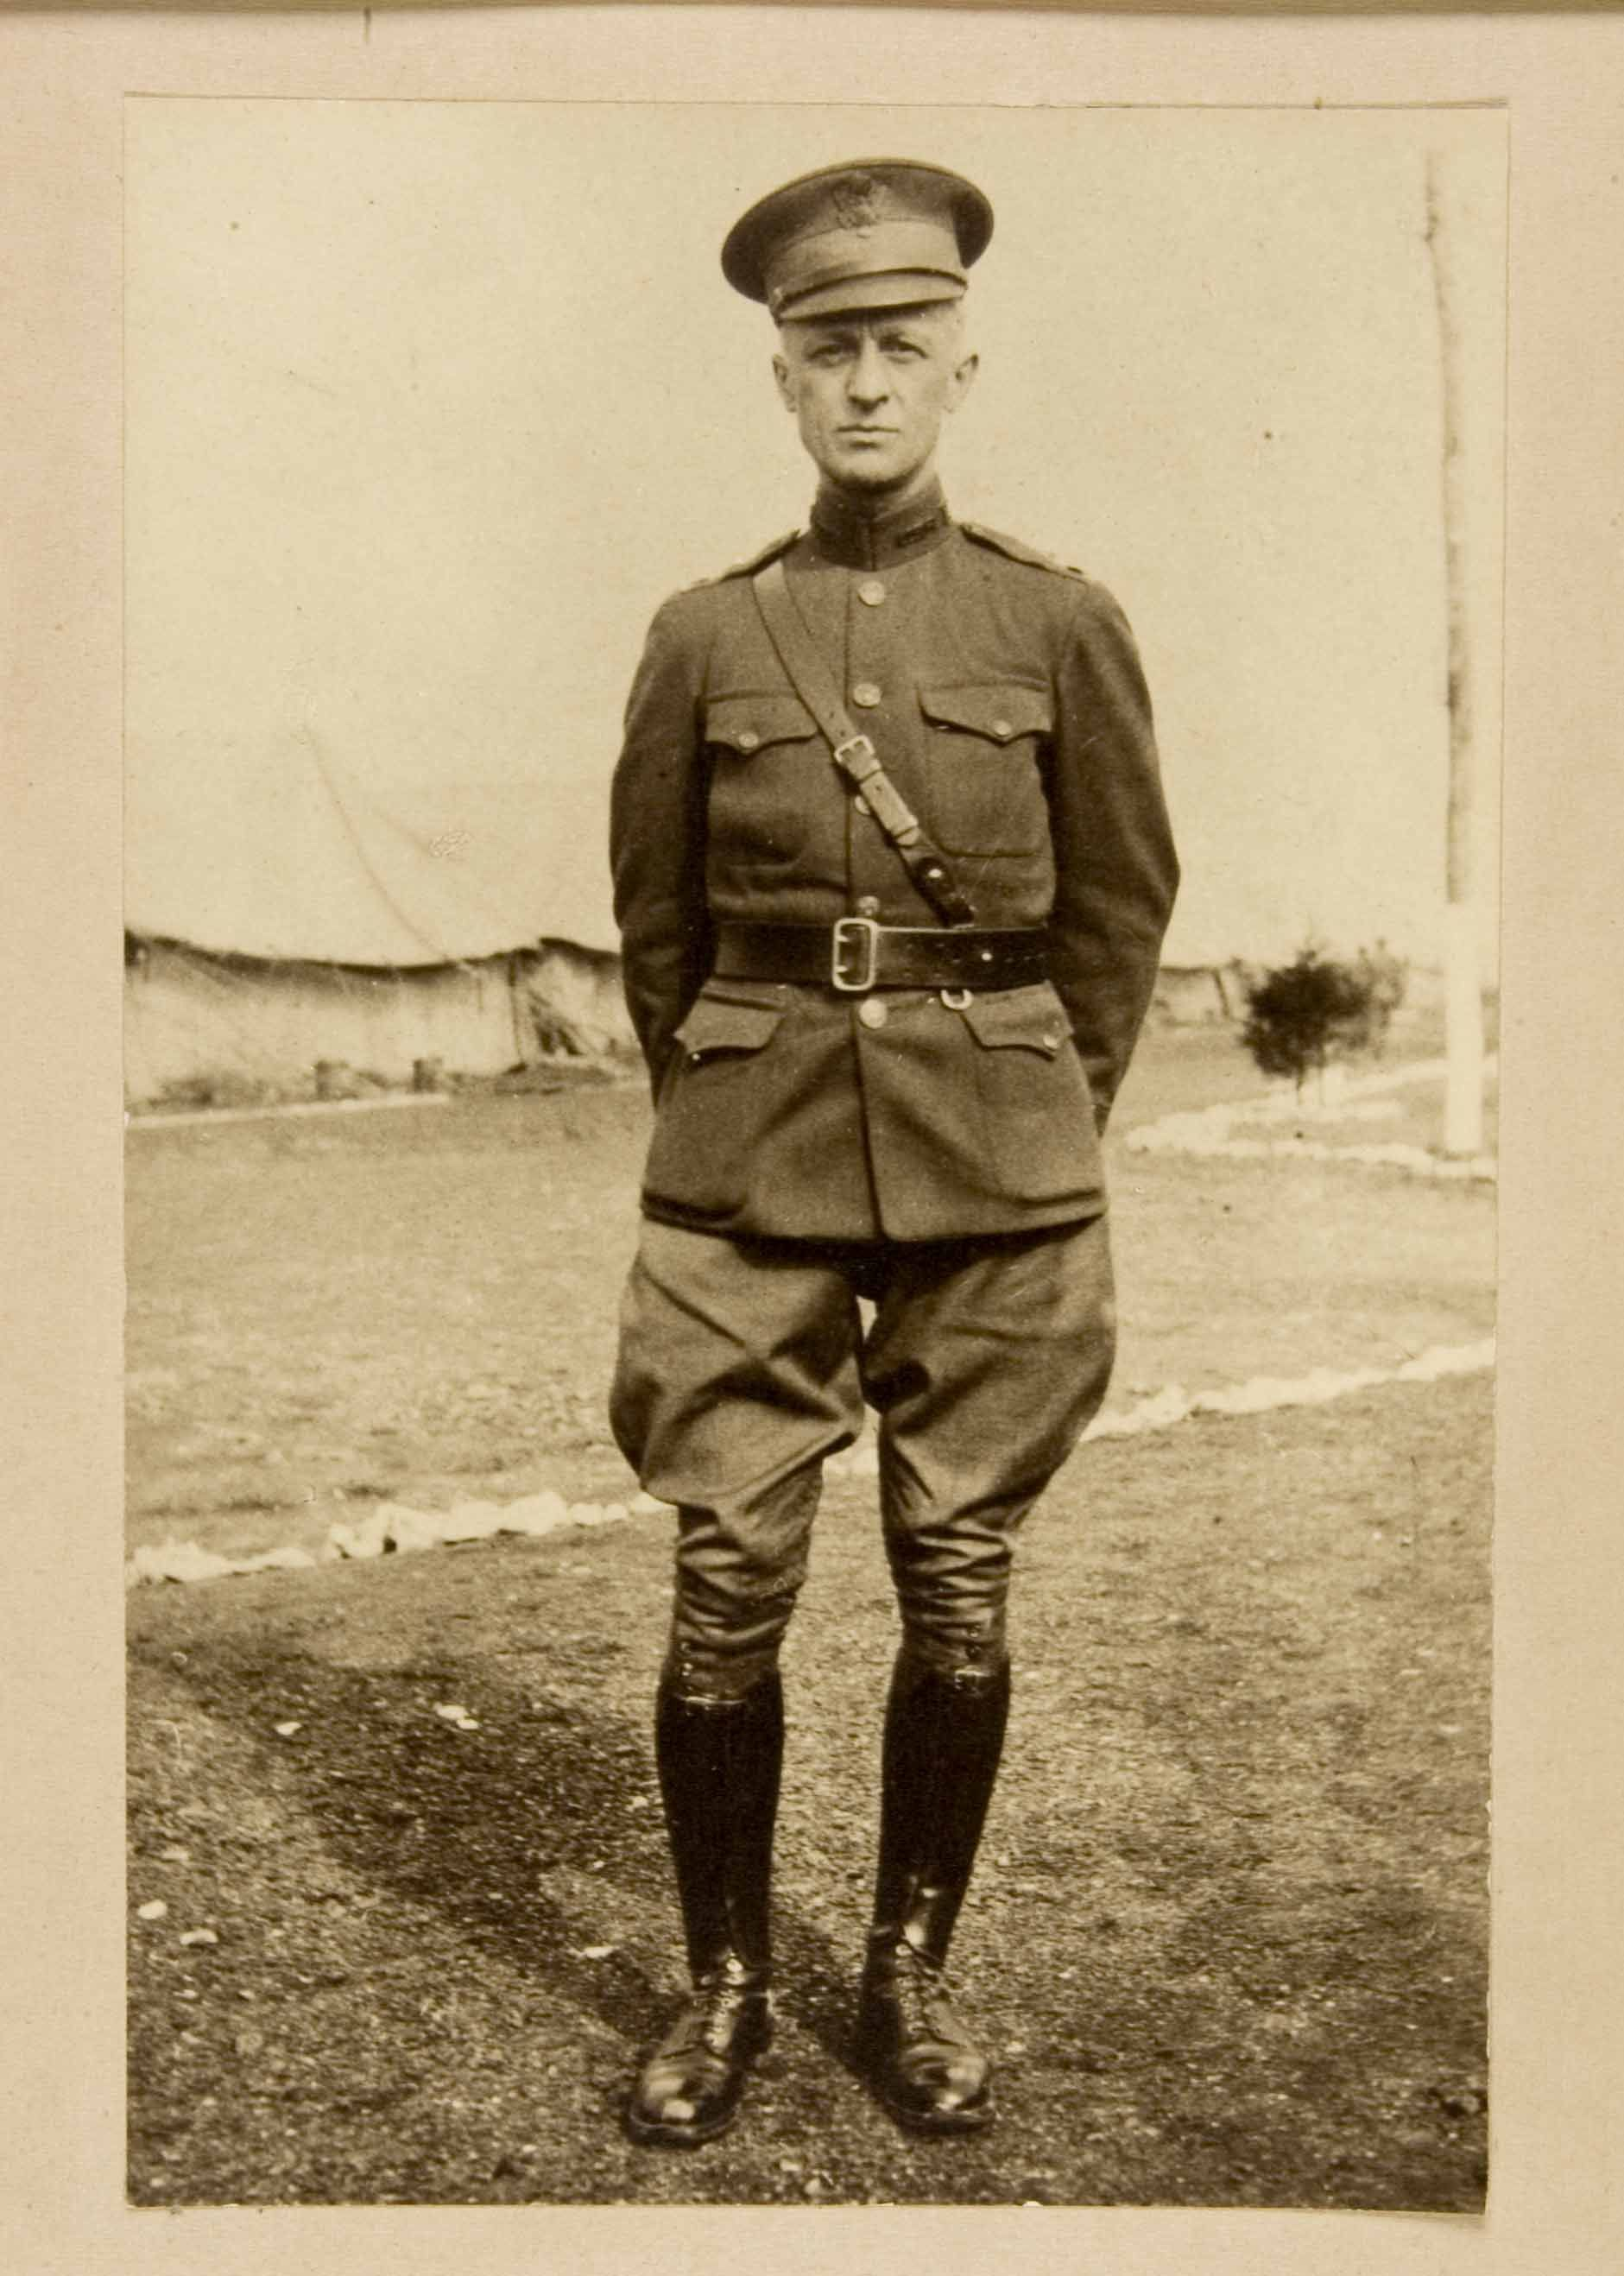 83e627dfb8a WWI American Uniform. This uniform was made strictly out of wool and  leather.